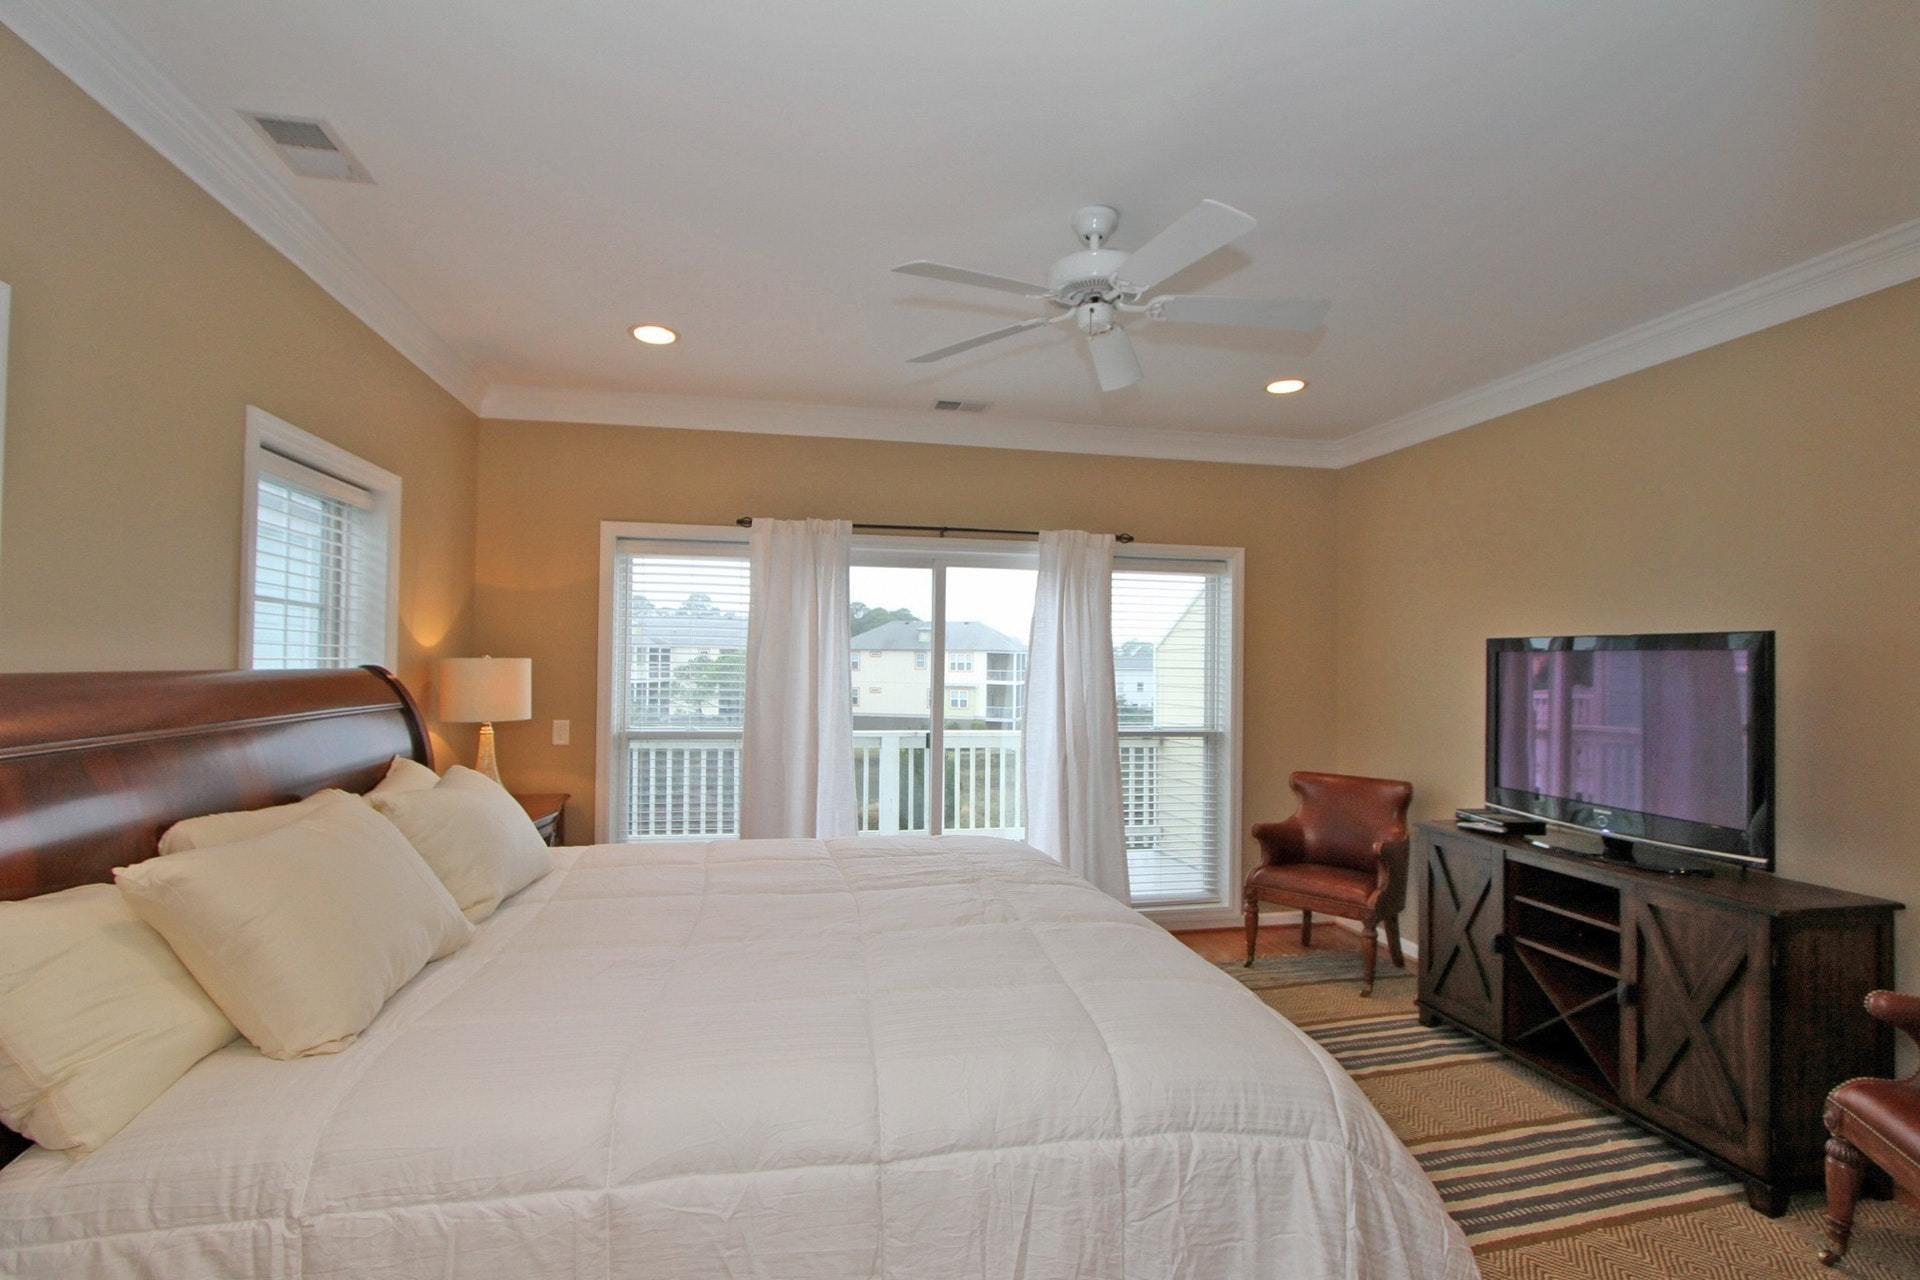 Waters Edge Homes For Sale - 85 2nd, Folly Beach, SC - 5